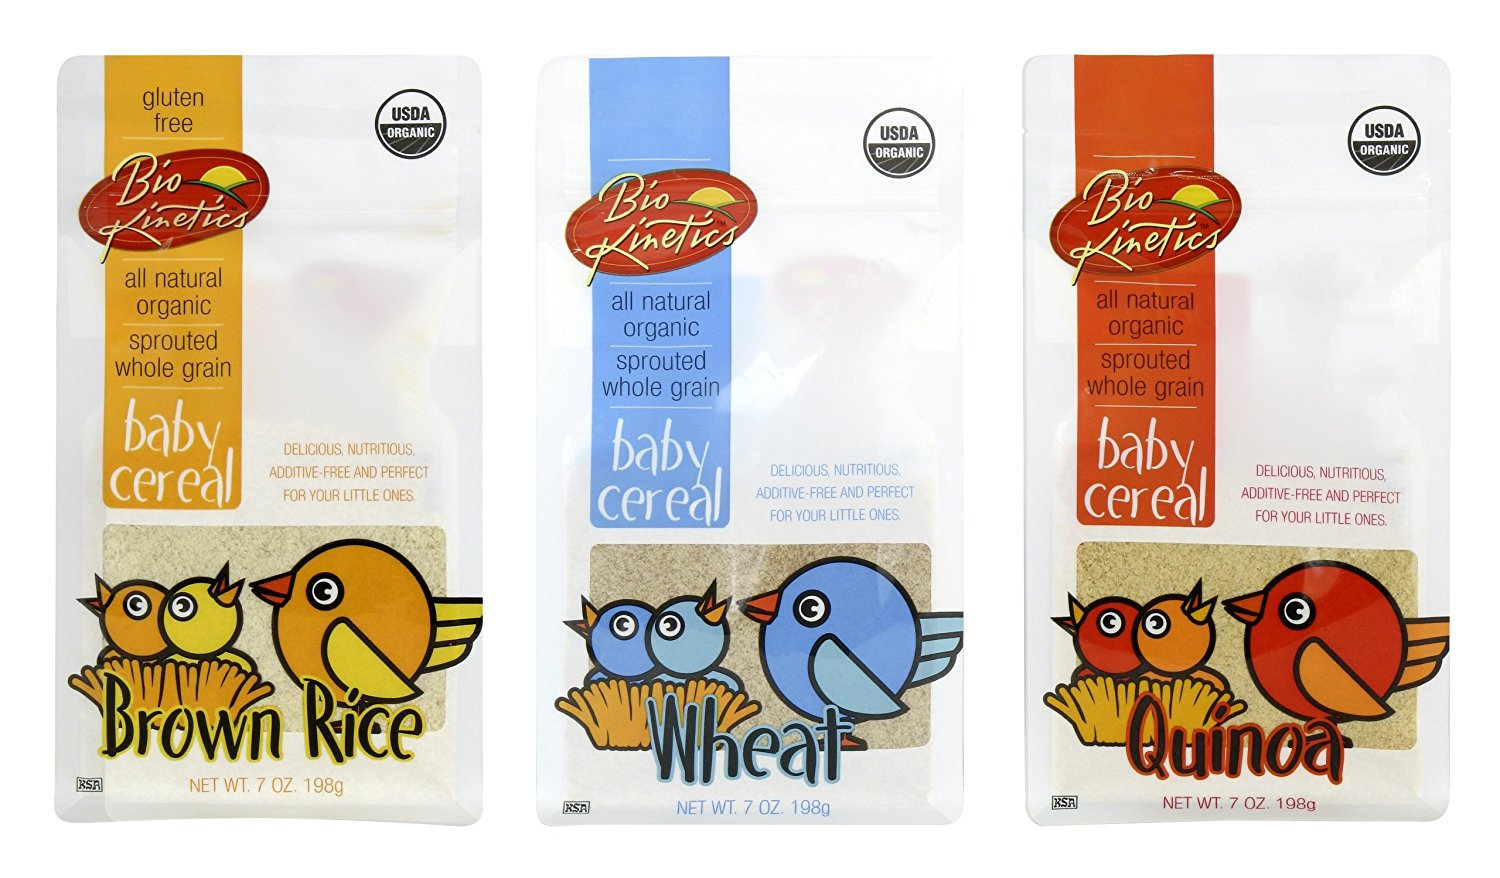 Organic, Sprouted Baby Cereal Assortment: Quinoa, Rice, Wheat - 7 Oz. (198 g) Each - 3 Pack Bundle Bio-Kinetics